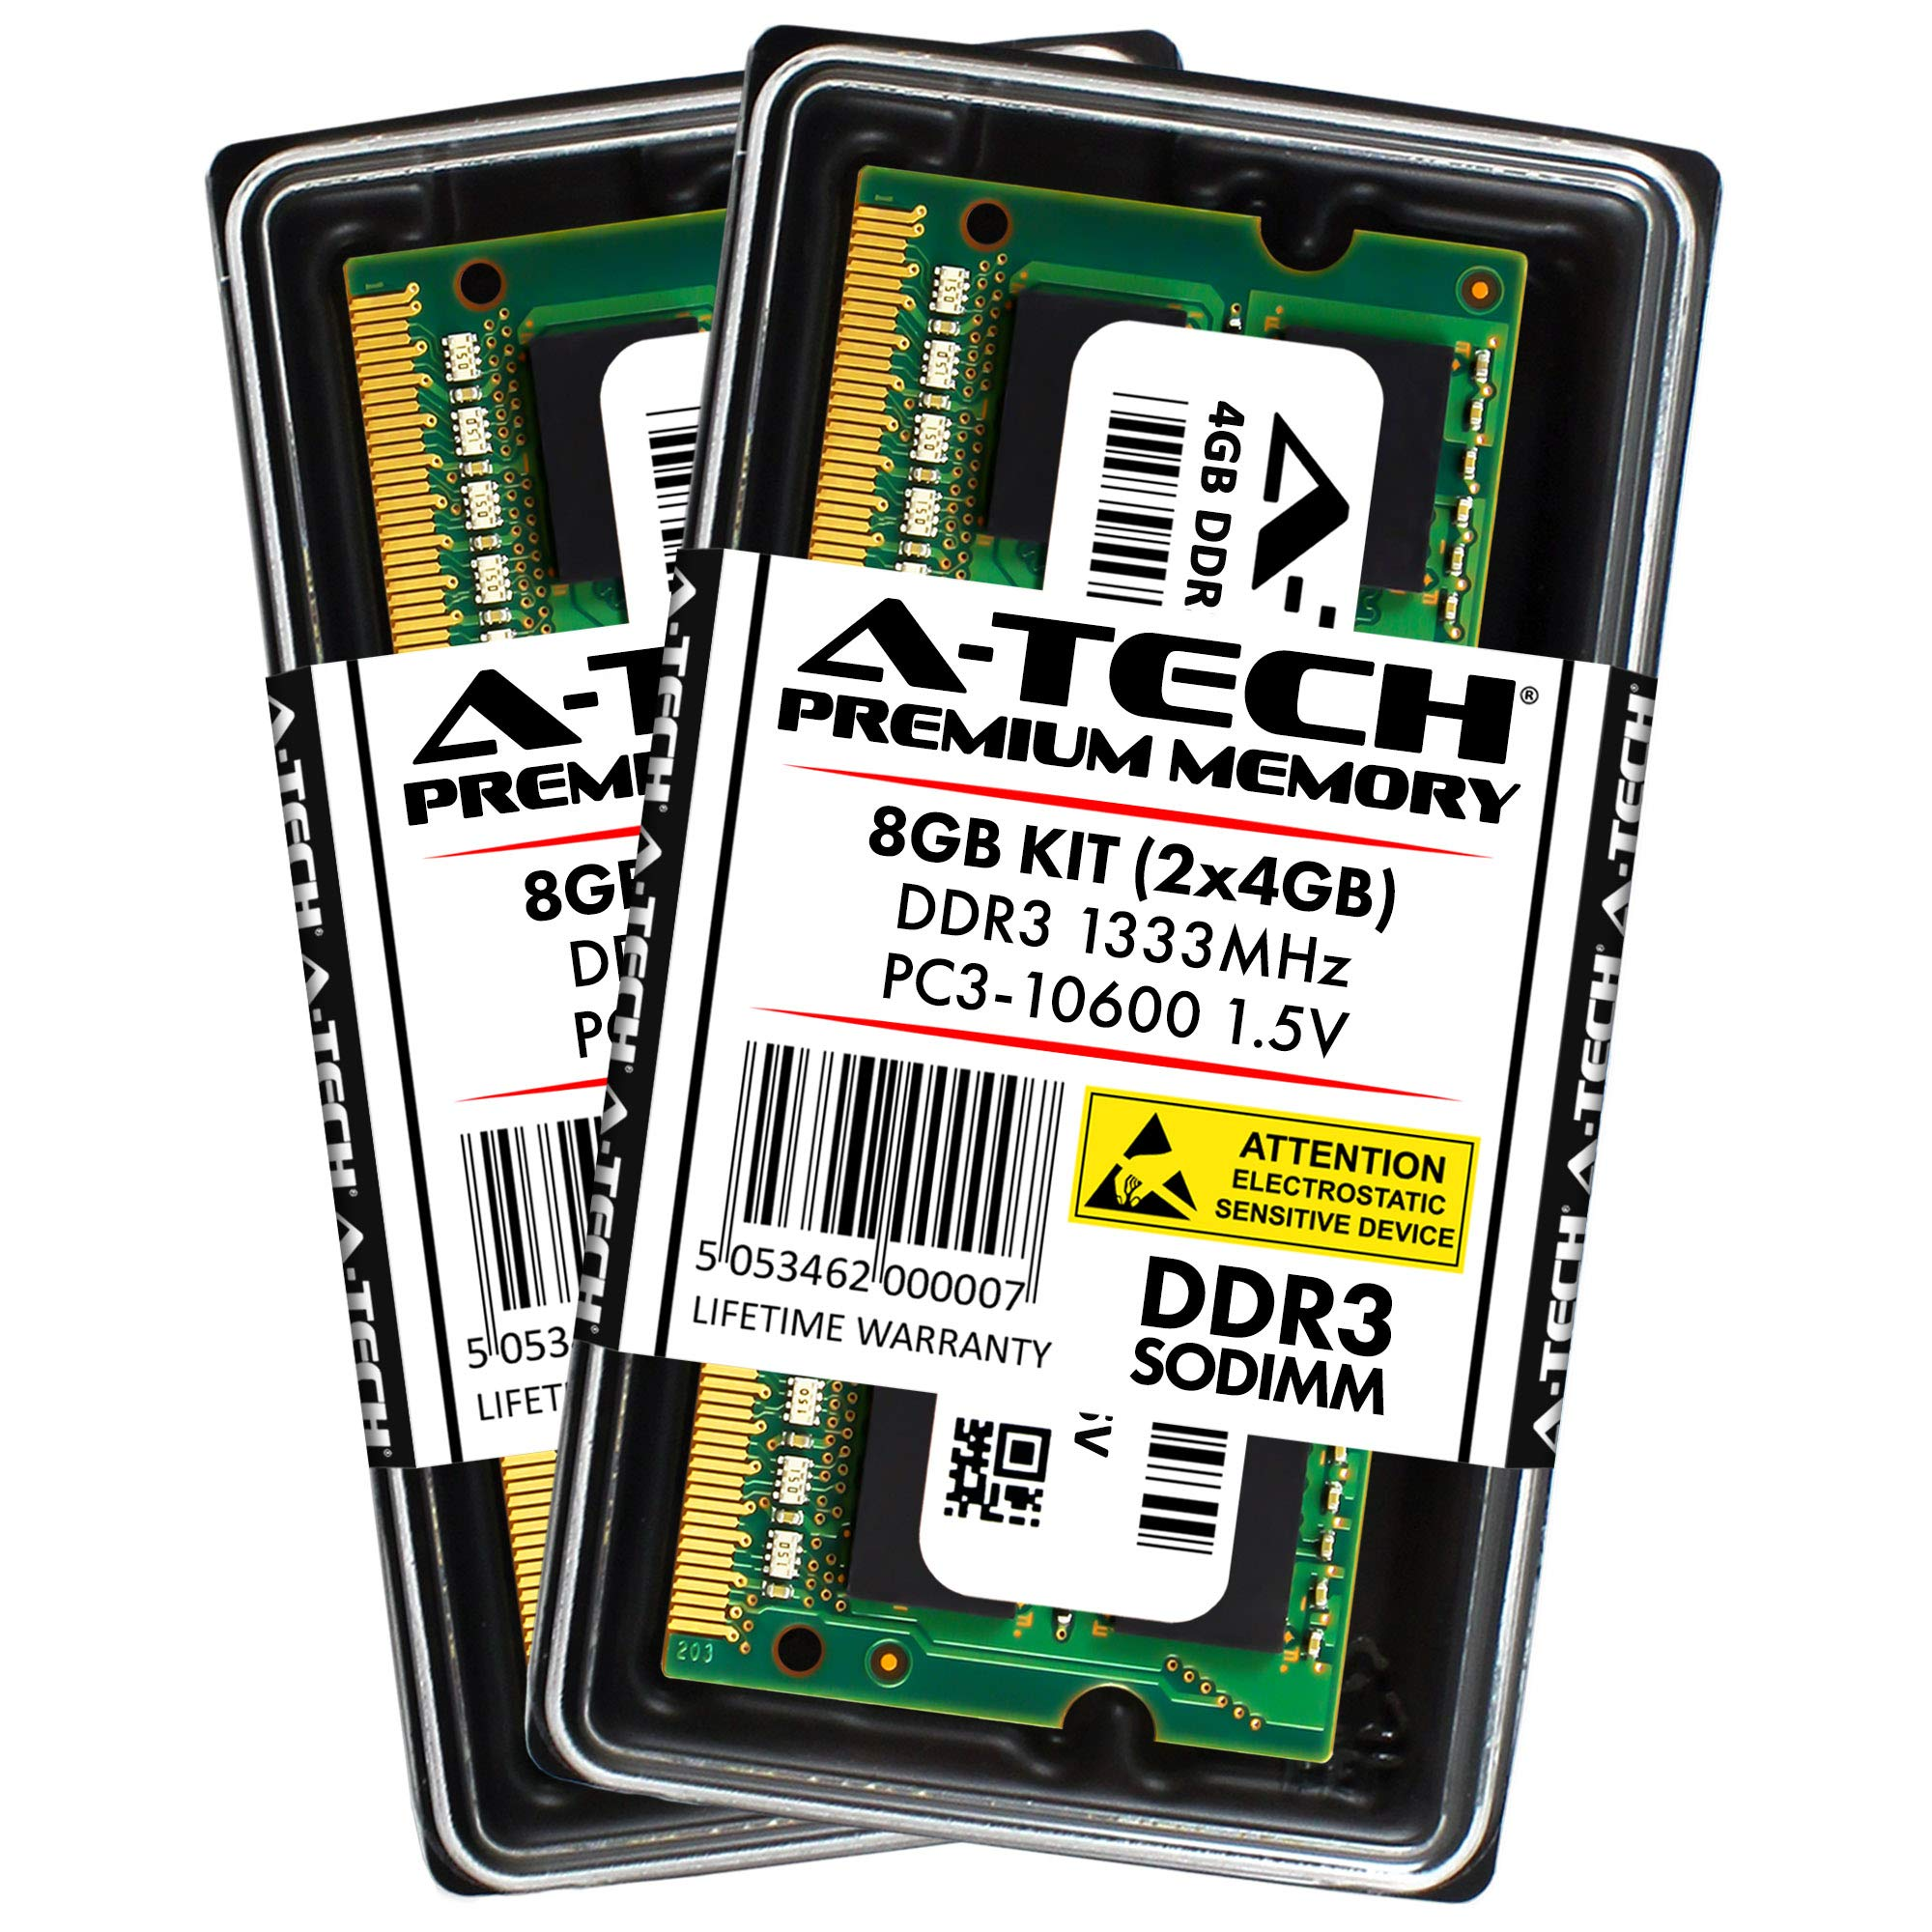 Memoria Ram 8gb A-tech Kit (2x 4gb) Ddr3 1333mhz Pc3-10600 204-pin Sodimm Computer Modules